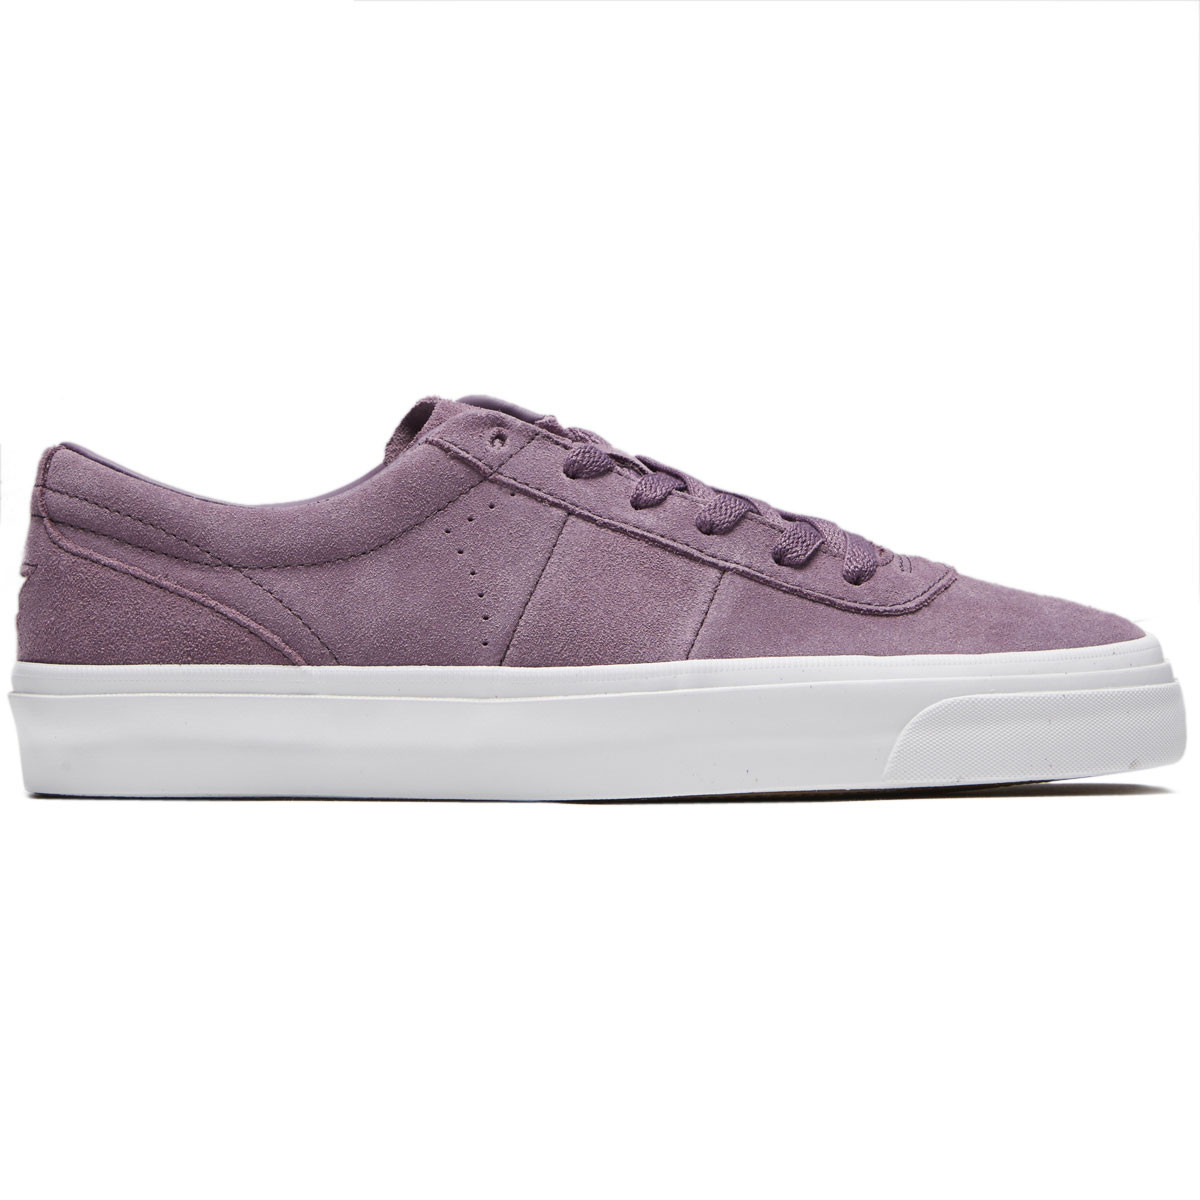 Converse Unisex One Star CC Pro Suede Ox Shoes